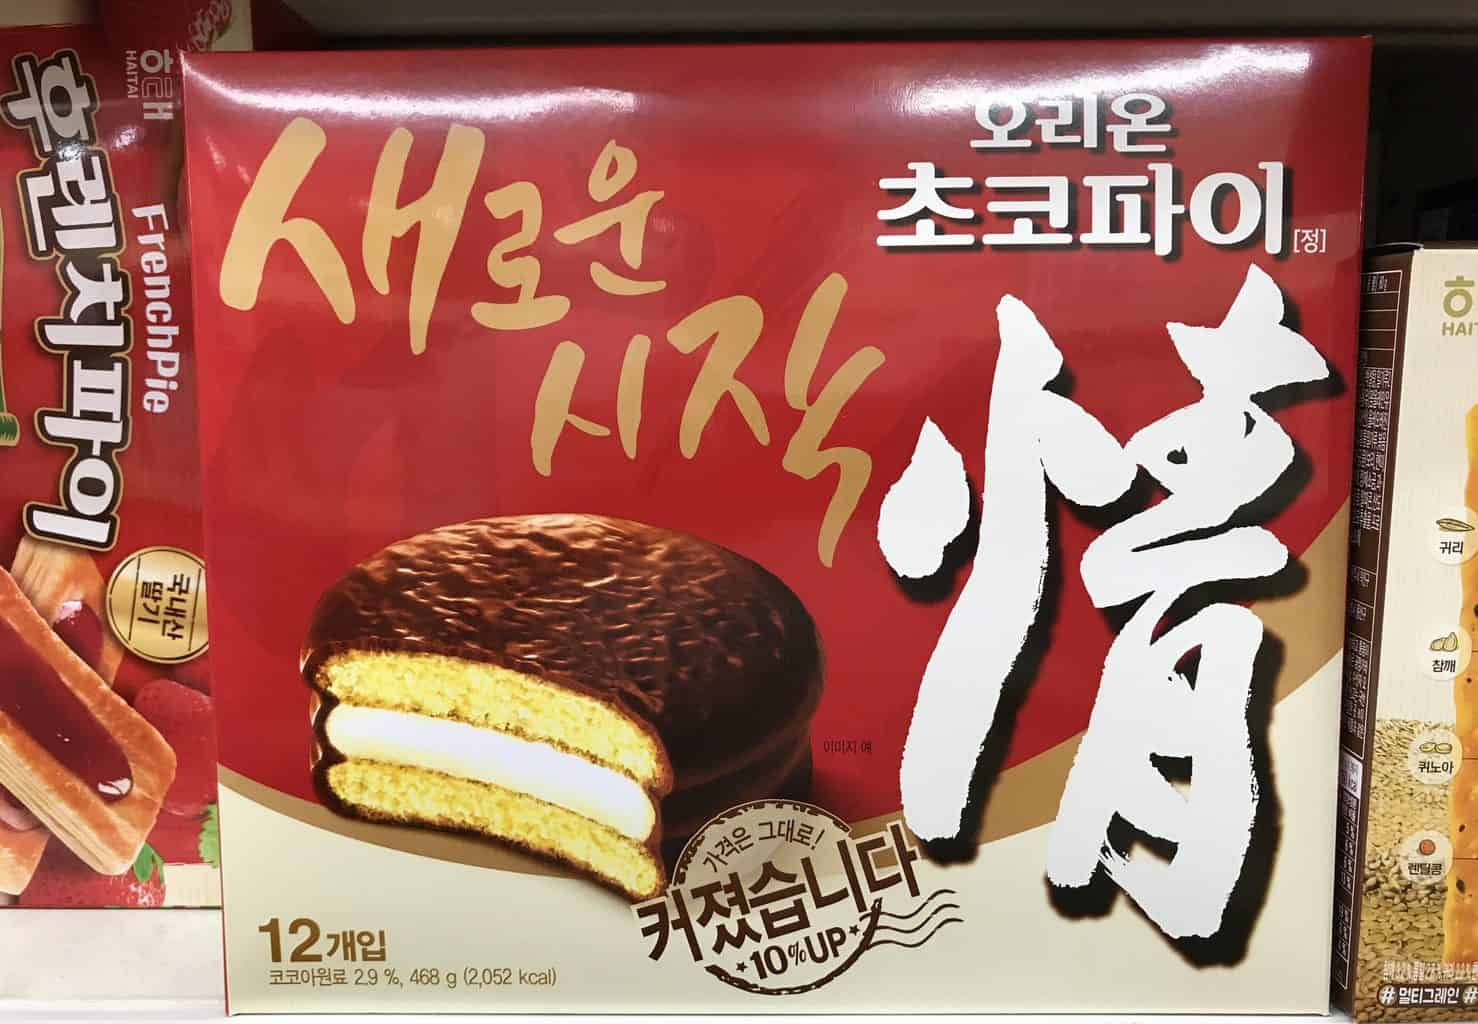 Orion Choco Pie box in a supermarket